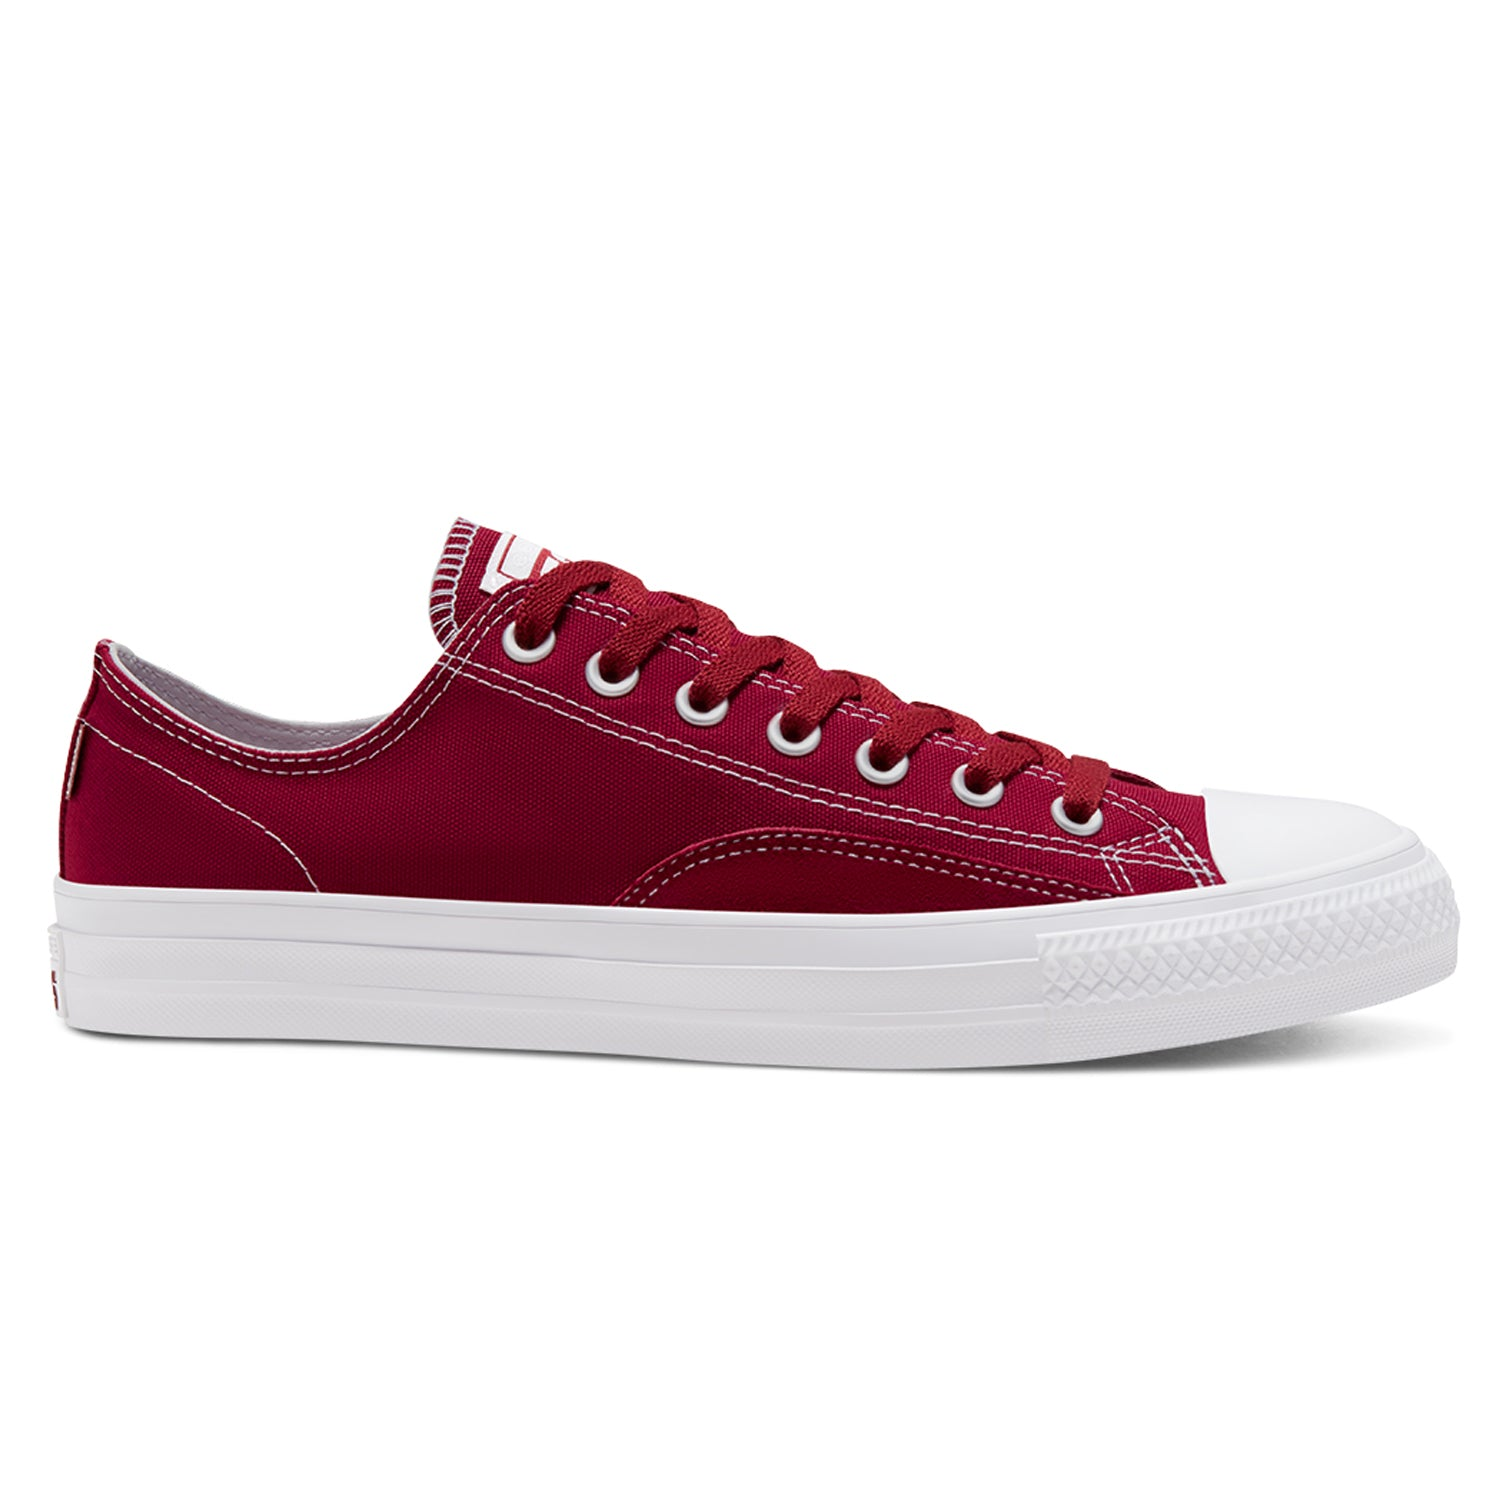 Converse Cons CTAS Pro OP Ox Team Red/White